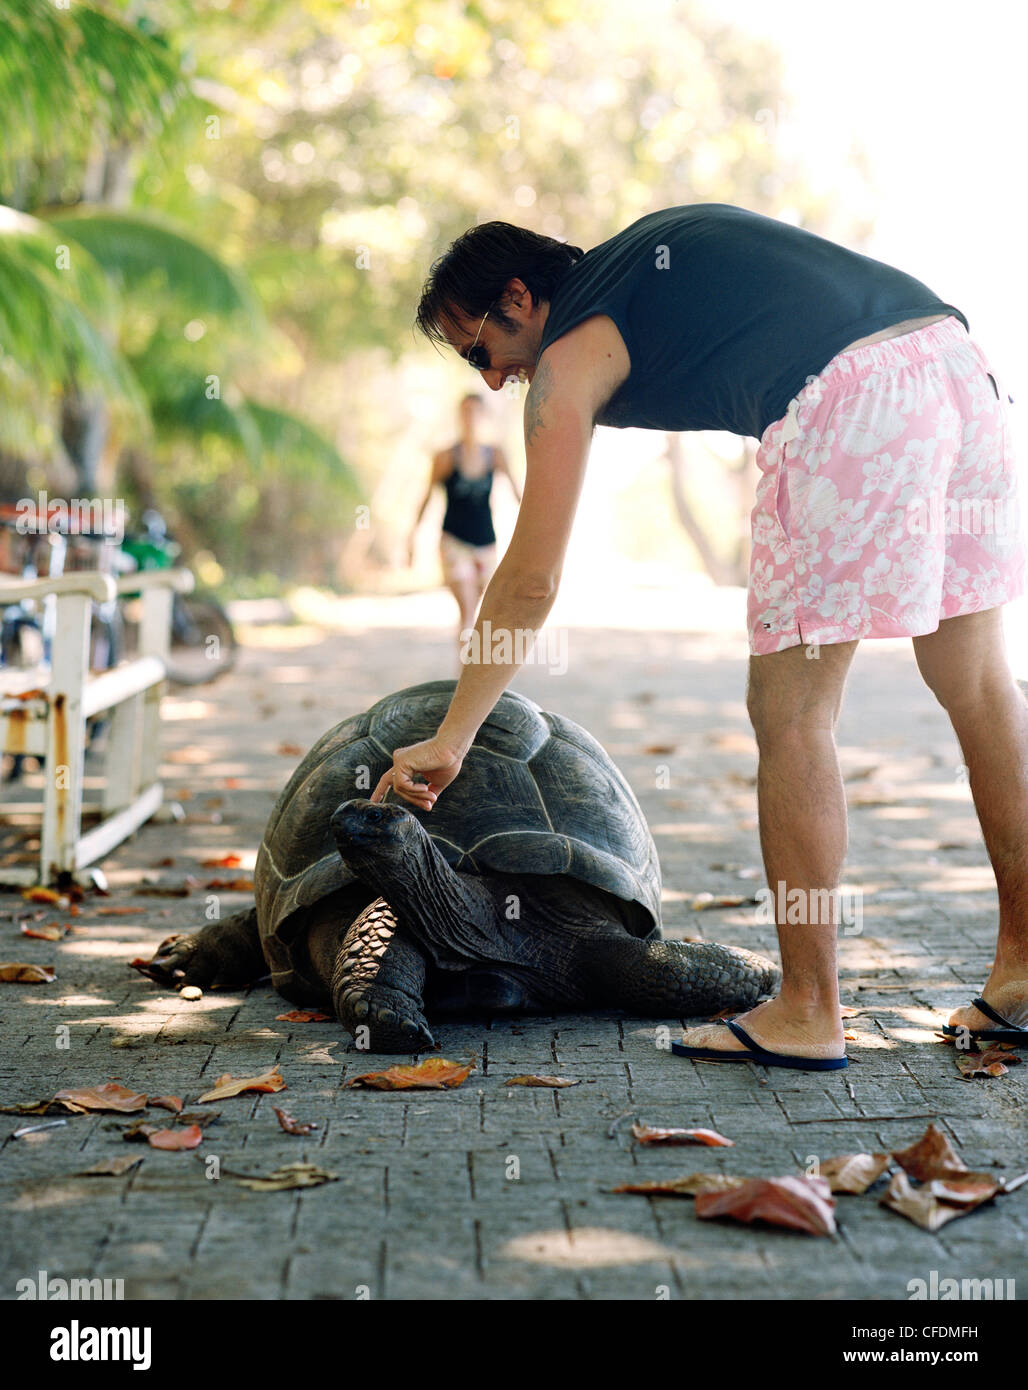 Tourist petting 28 year old turtle on the promenade at Anse Banane, eastern La Digue, La Digue and Inner Islands, Stock Photo